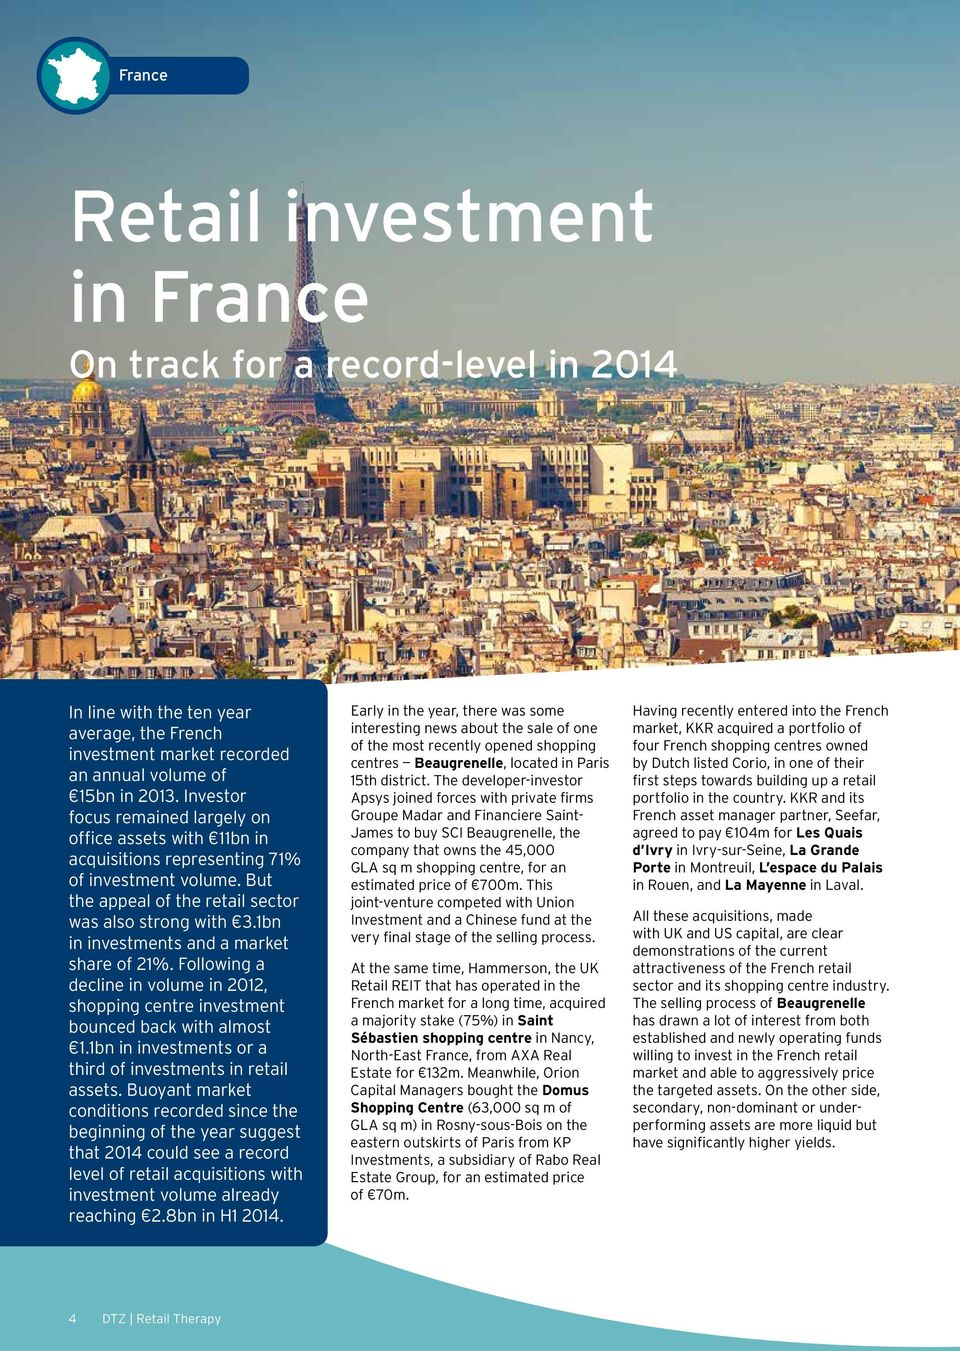 1bn in investments and a market share of 21%. Following a decline in volume in 2012, shopping centre investment bounced back with almost 1.